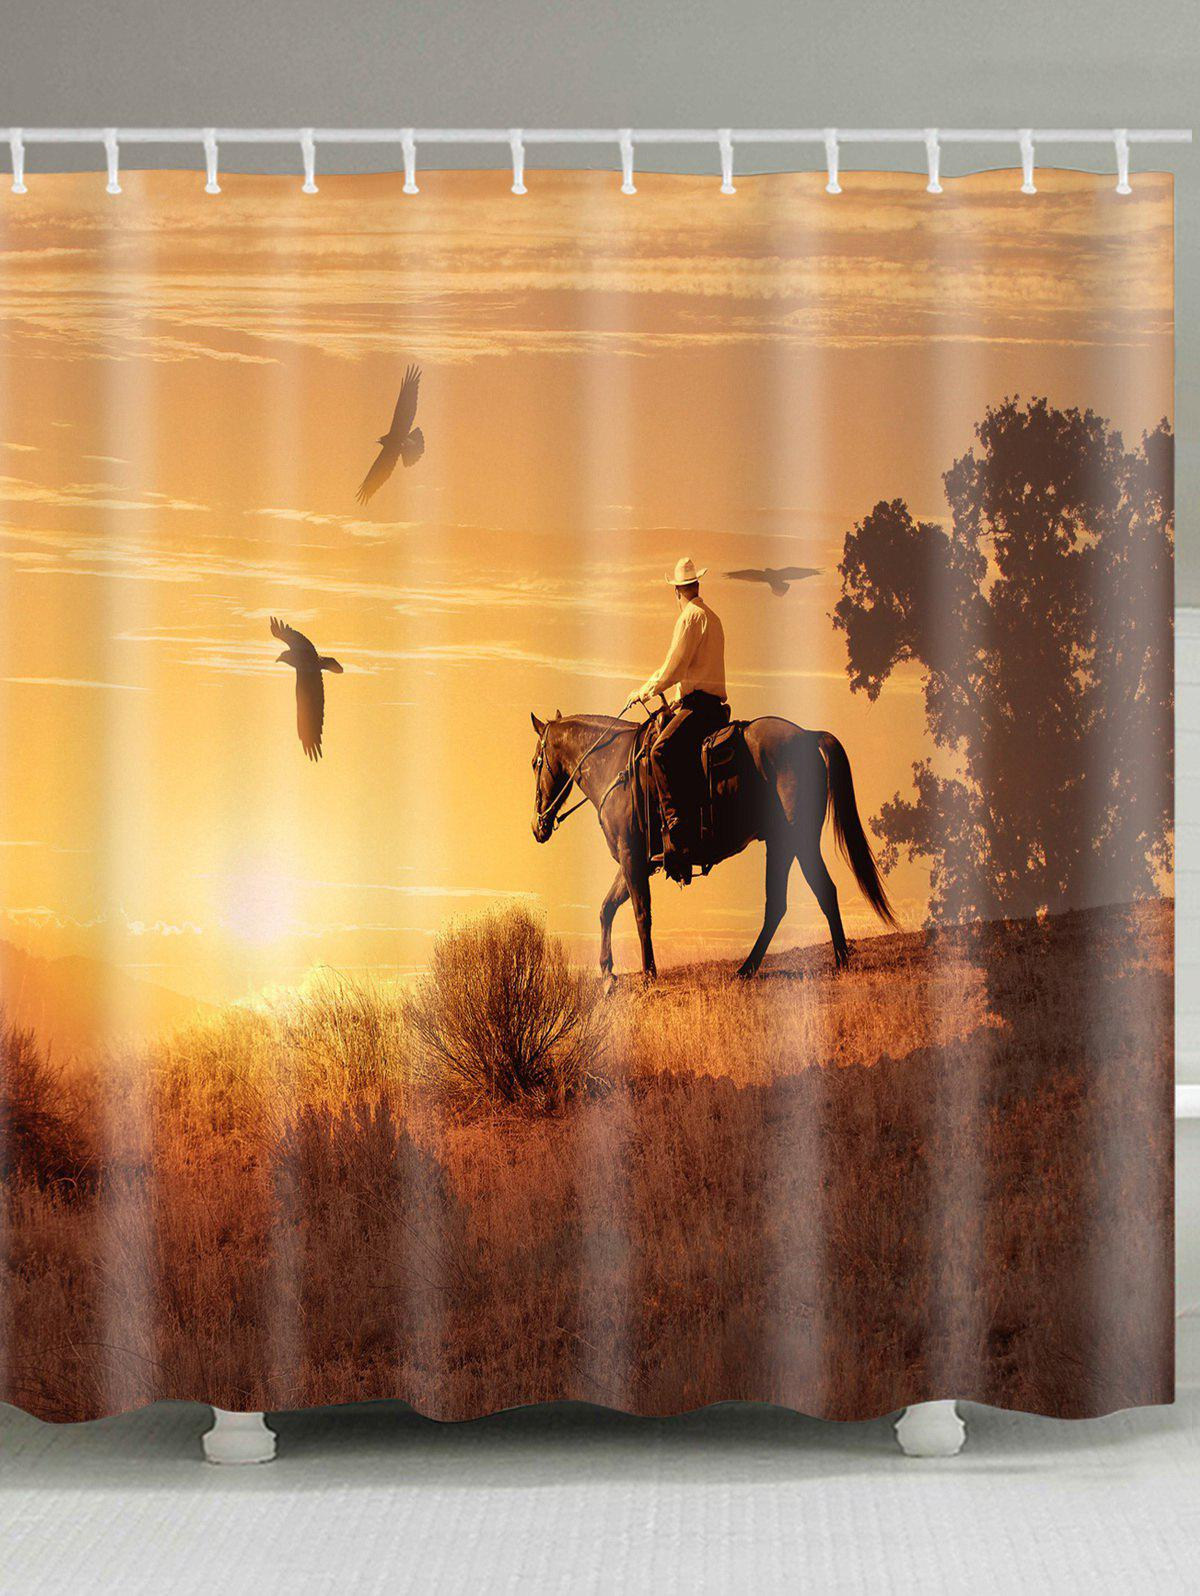 Horseman Birds Printed Showerproof Bath Curtain - BROWN W71 INCH * L71 INCH